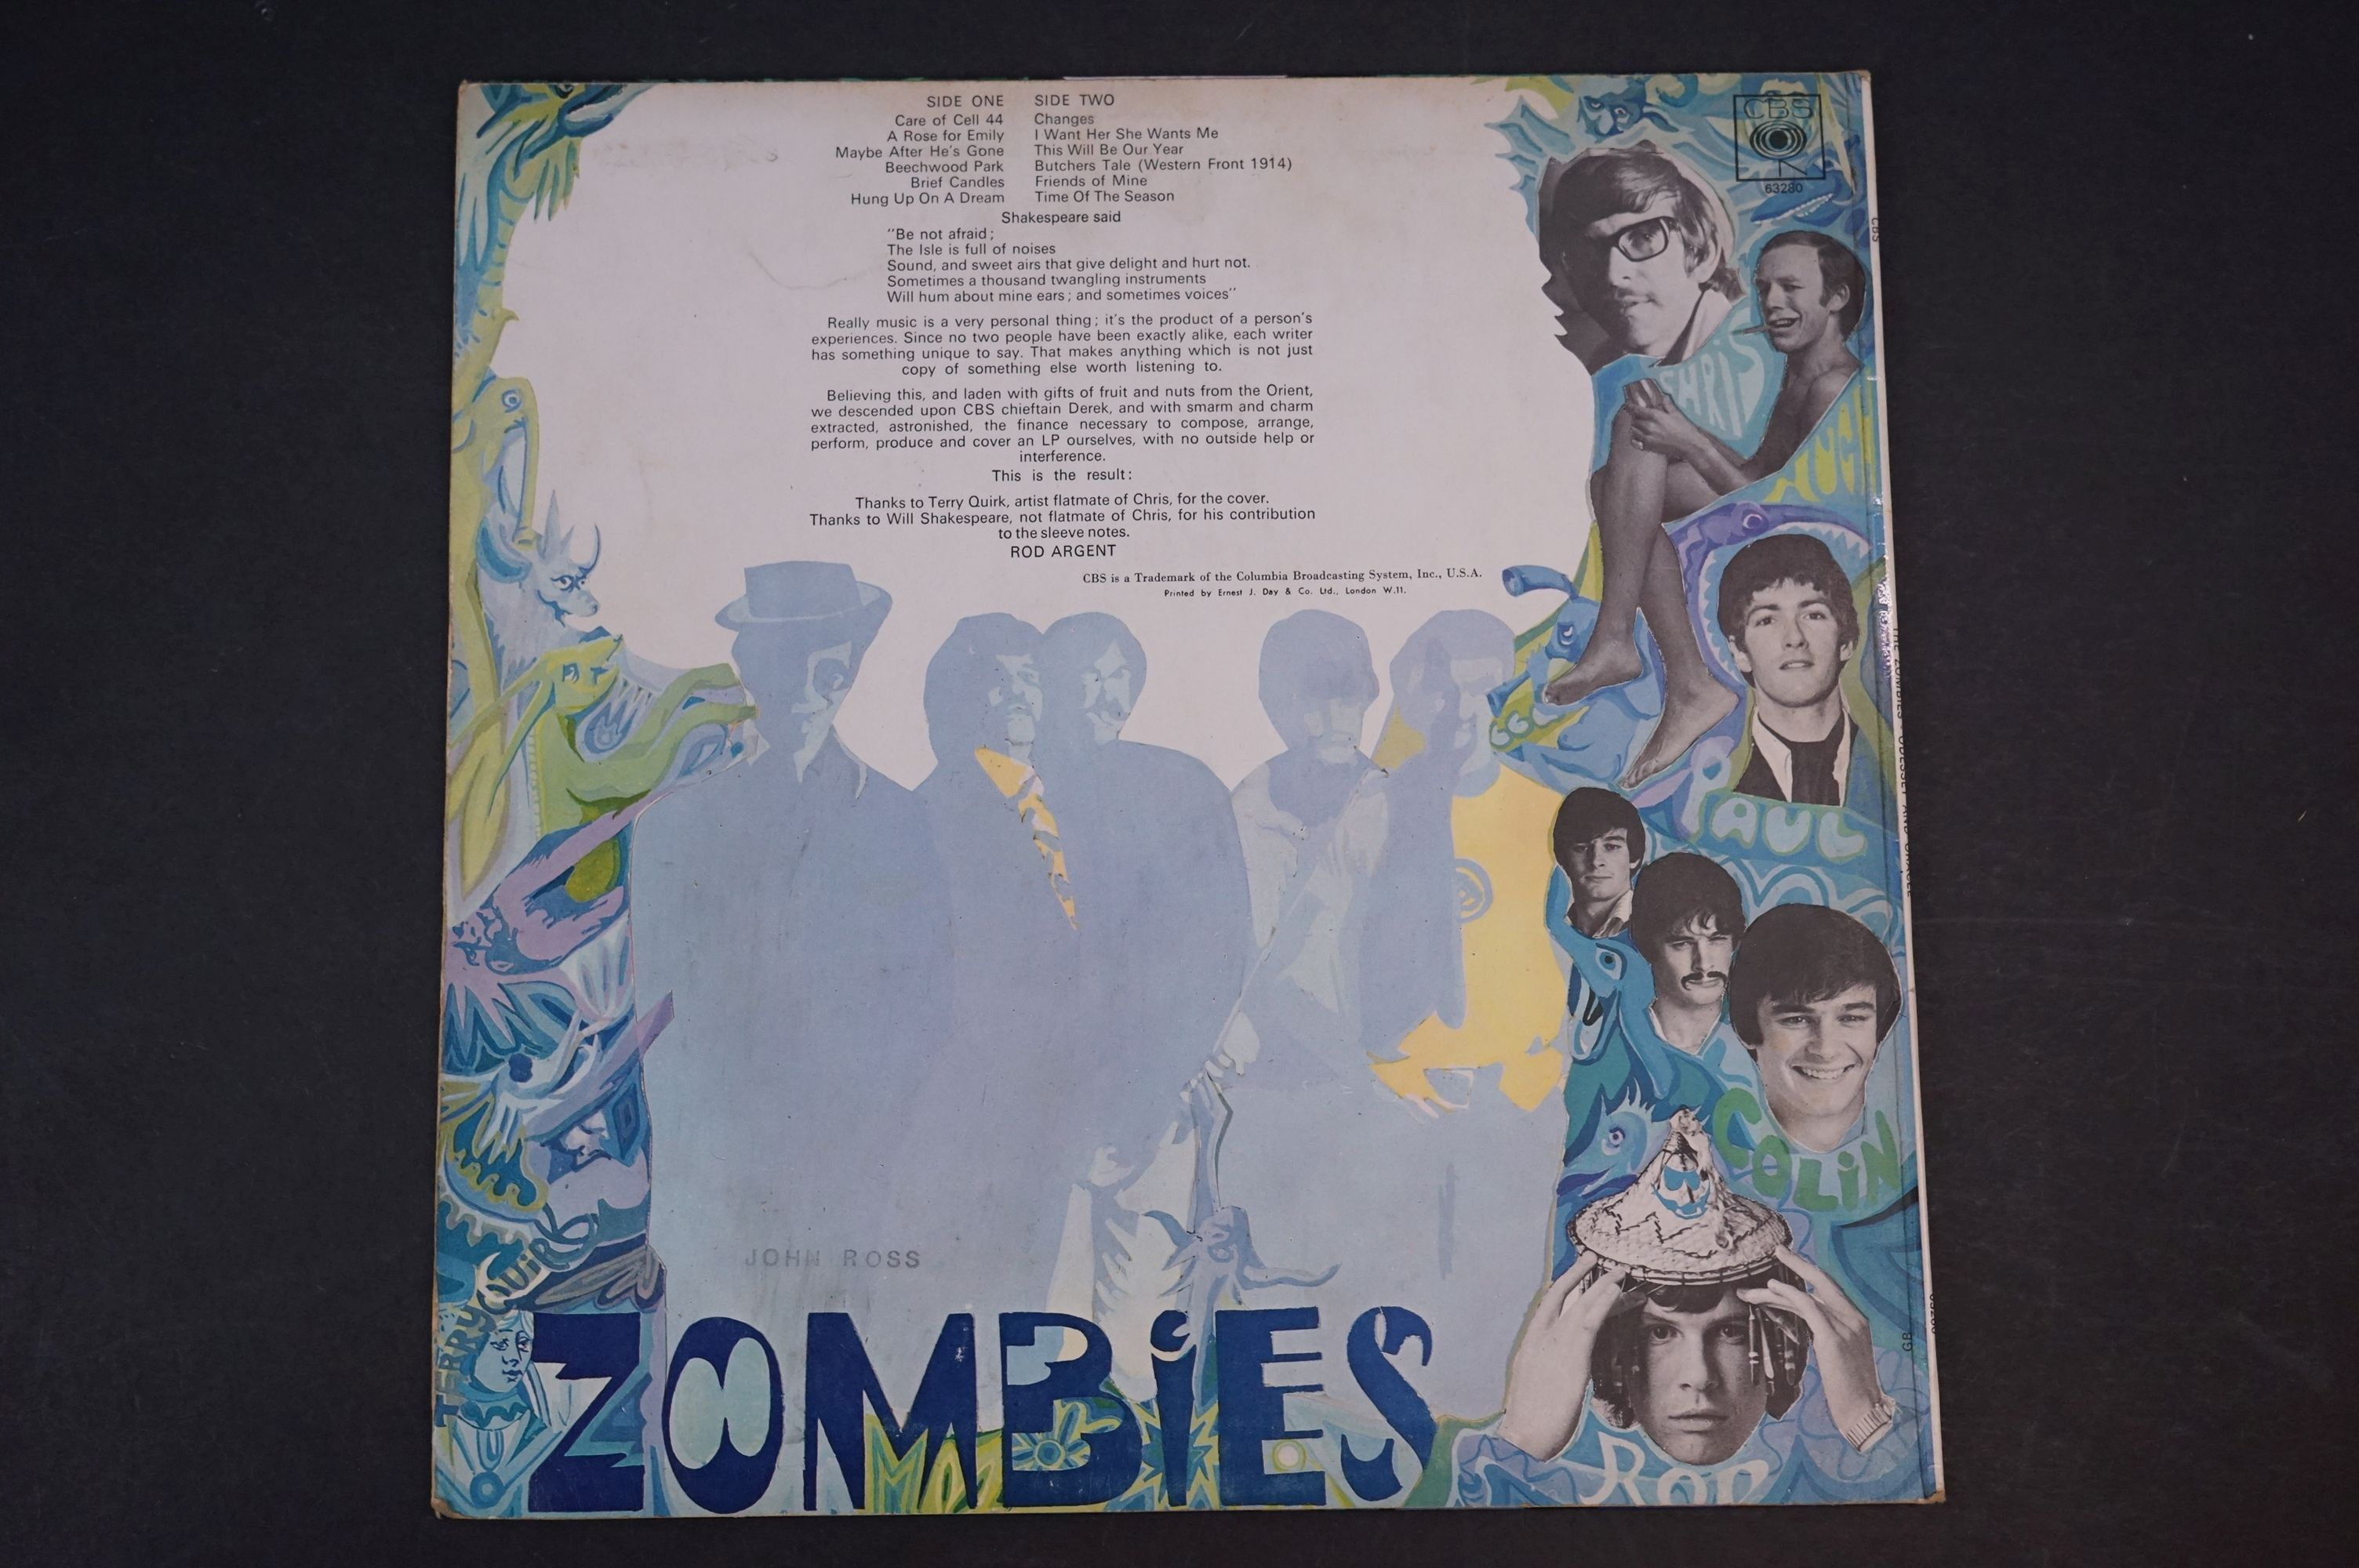 Vinyl - The Zombies Odessey and Oracle on CBS SBPG63280 Stereo, 1968, with CBS Inner sleeve, vinyl - Image 2 of 5